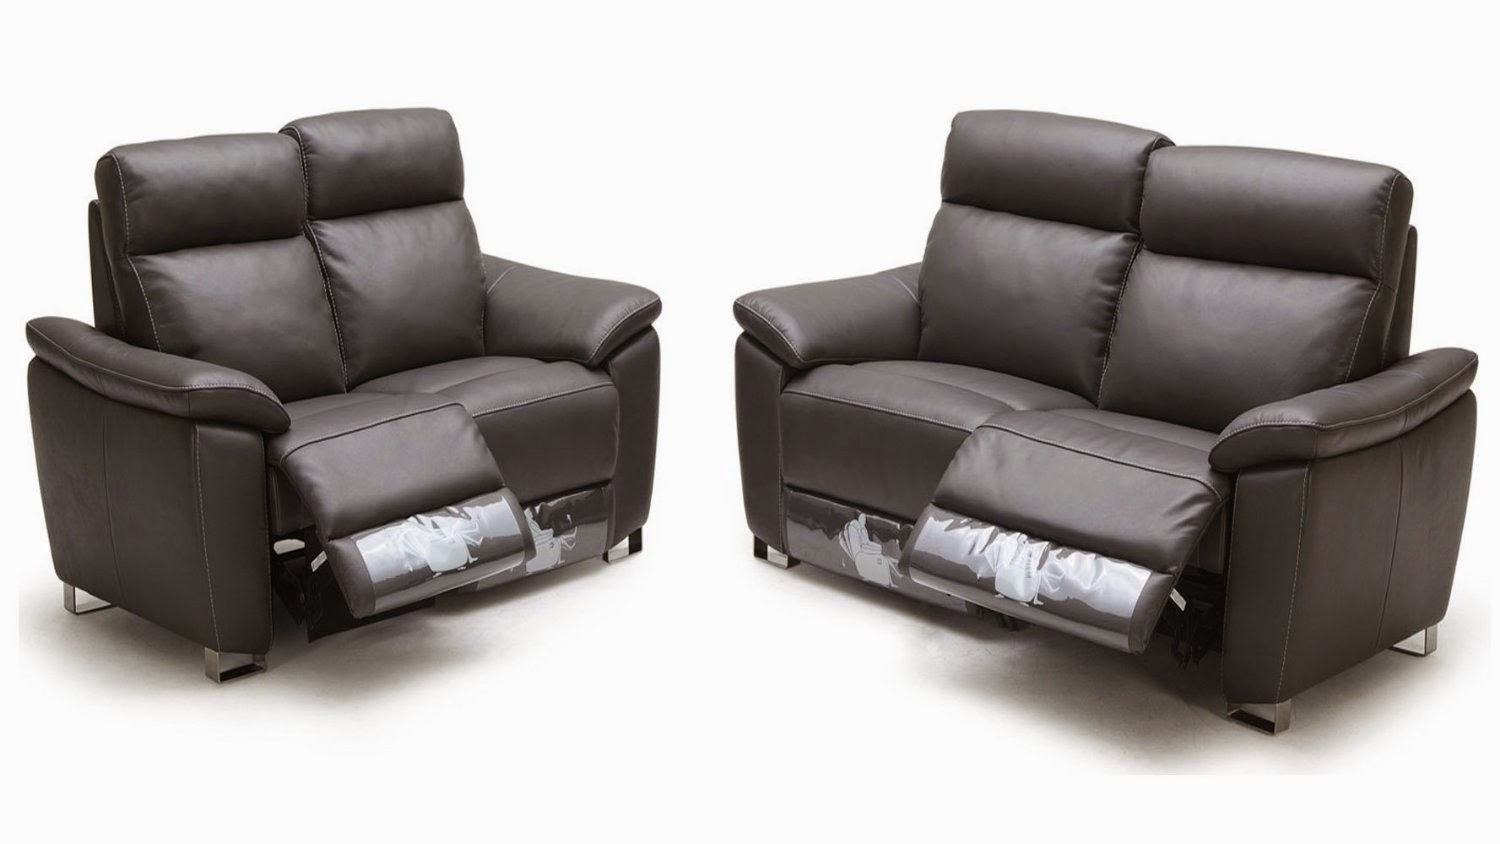 Best reclining sofa for the money two seater reclining leather sofas Leather sofa and loveseat recliner